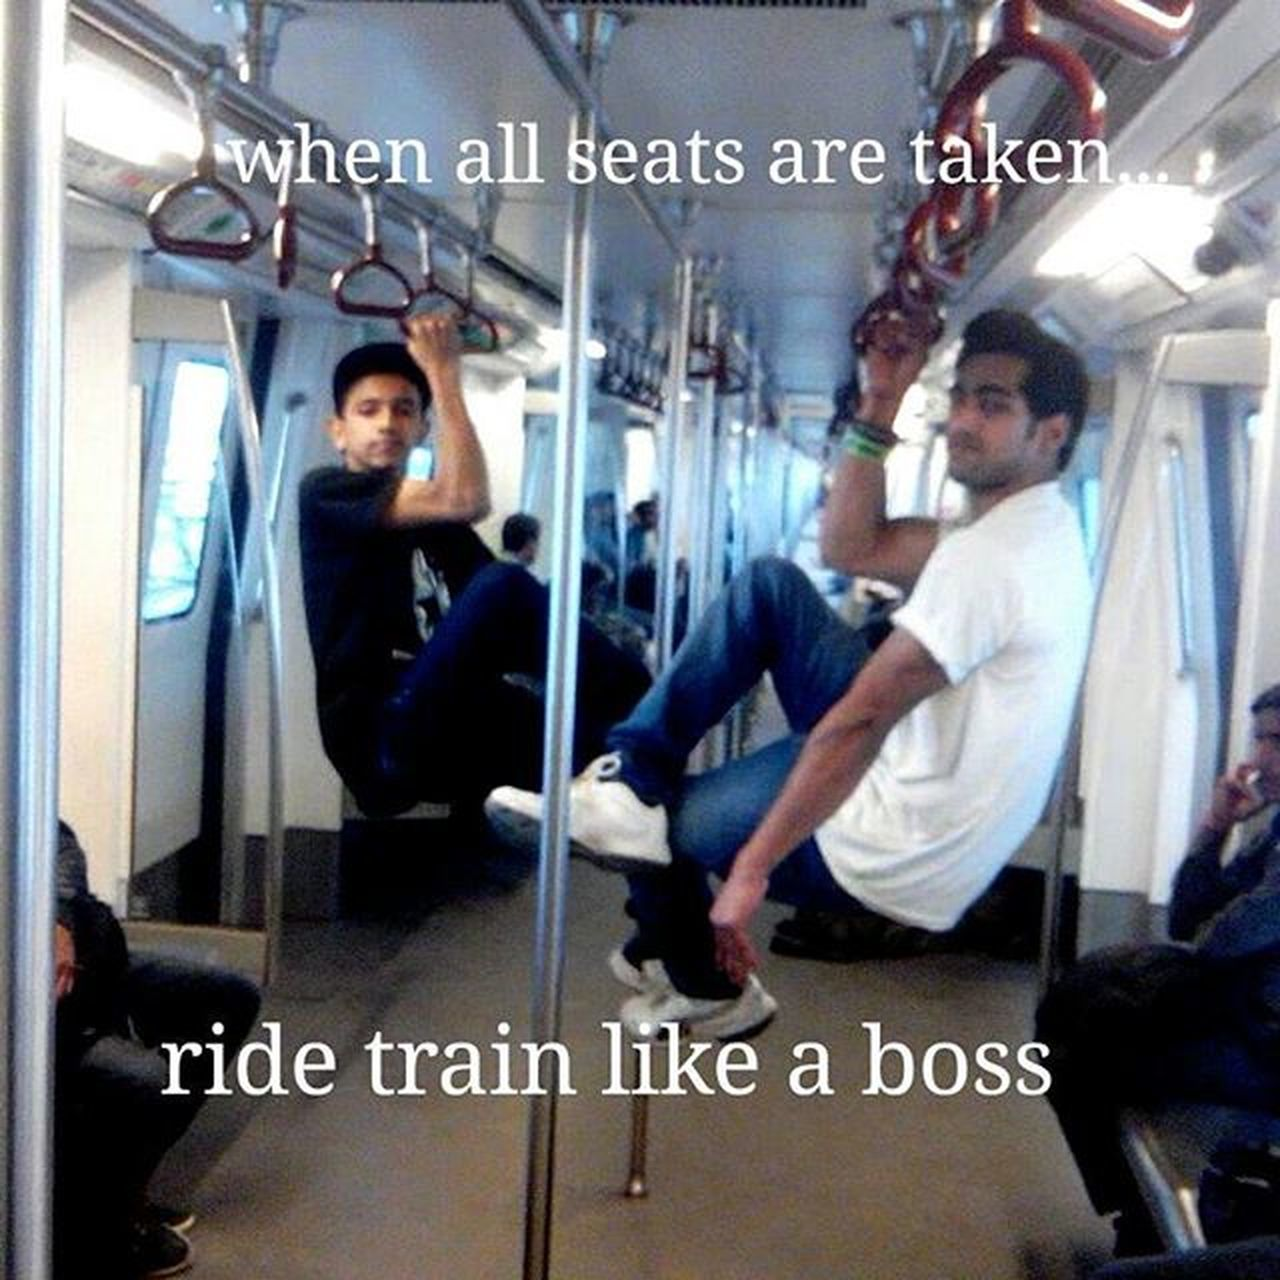 When all seats are taken ... Ride like a boss...@siddharth.lil.beast @anujkumarsw... Travelinstyle Style Onearam Pullup Hold Metro Justforfun Streetworkout Calisthenics Barbrothers Barstarzz Perfect Everywhere Alldayeveryday  India Swi Perfect